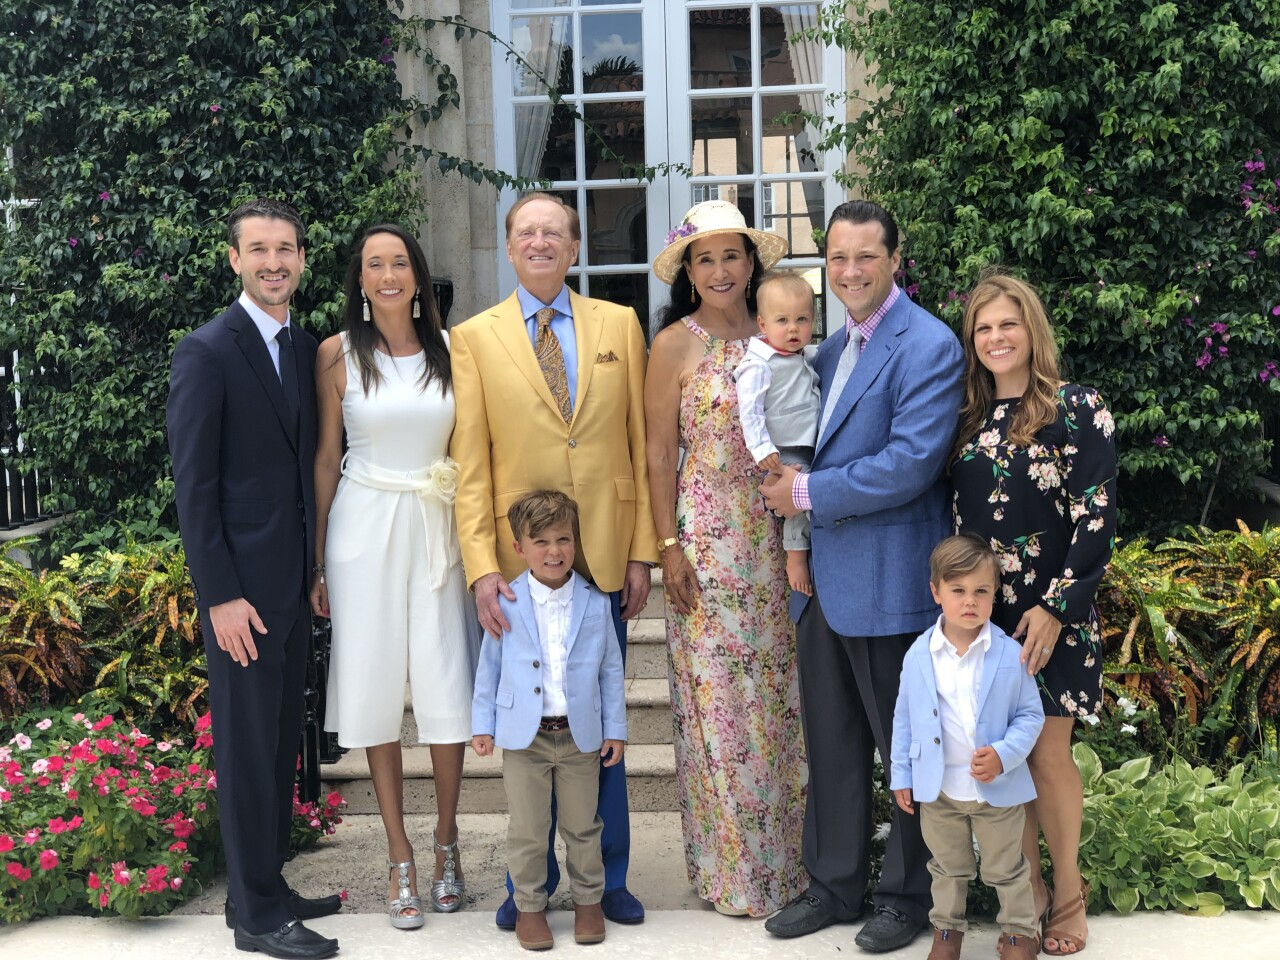 Rick Case Family 2019JPG.JPG